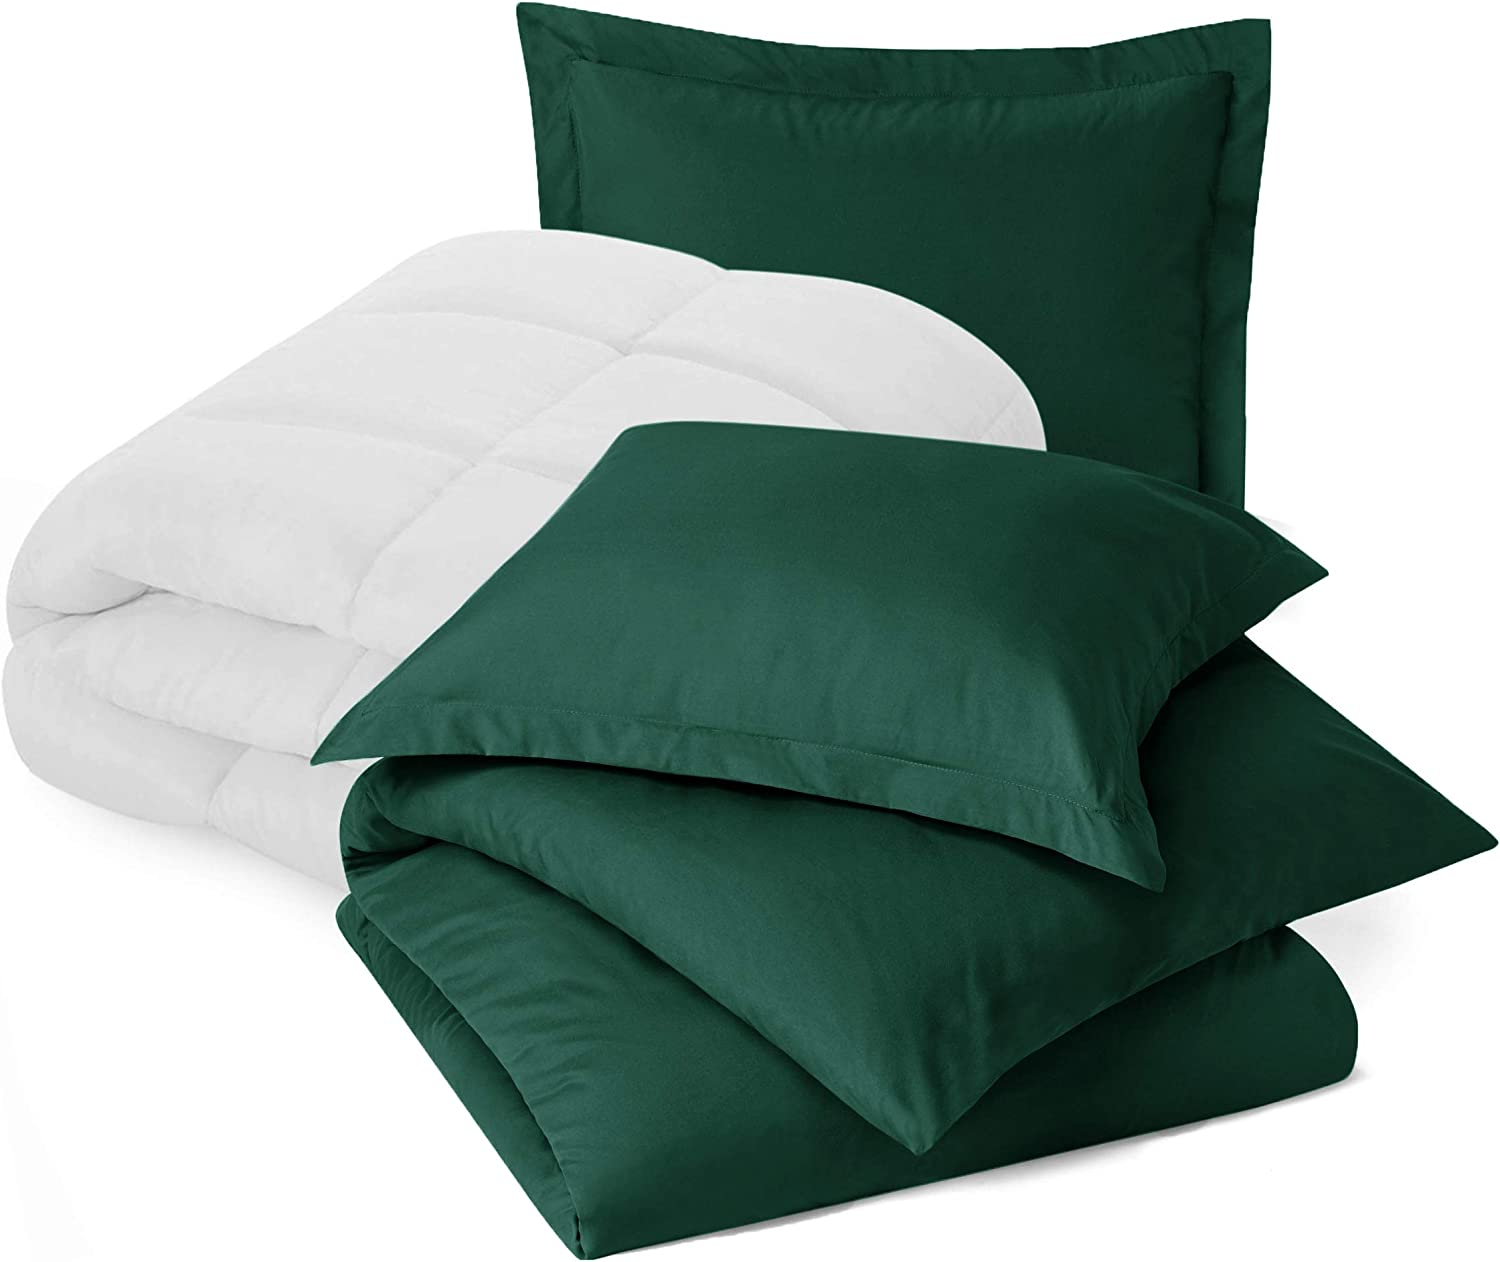 Nestl Bedding Queen Ranking TOP3 Set f – with Comforter Dealing full price reduction